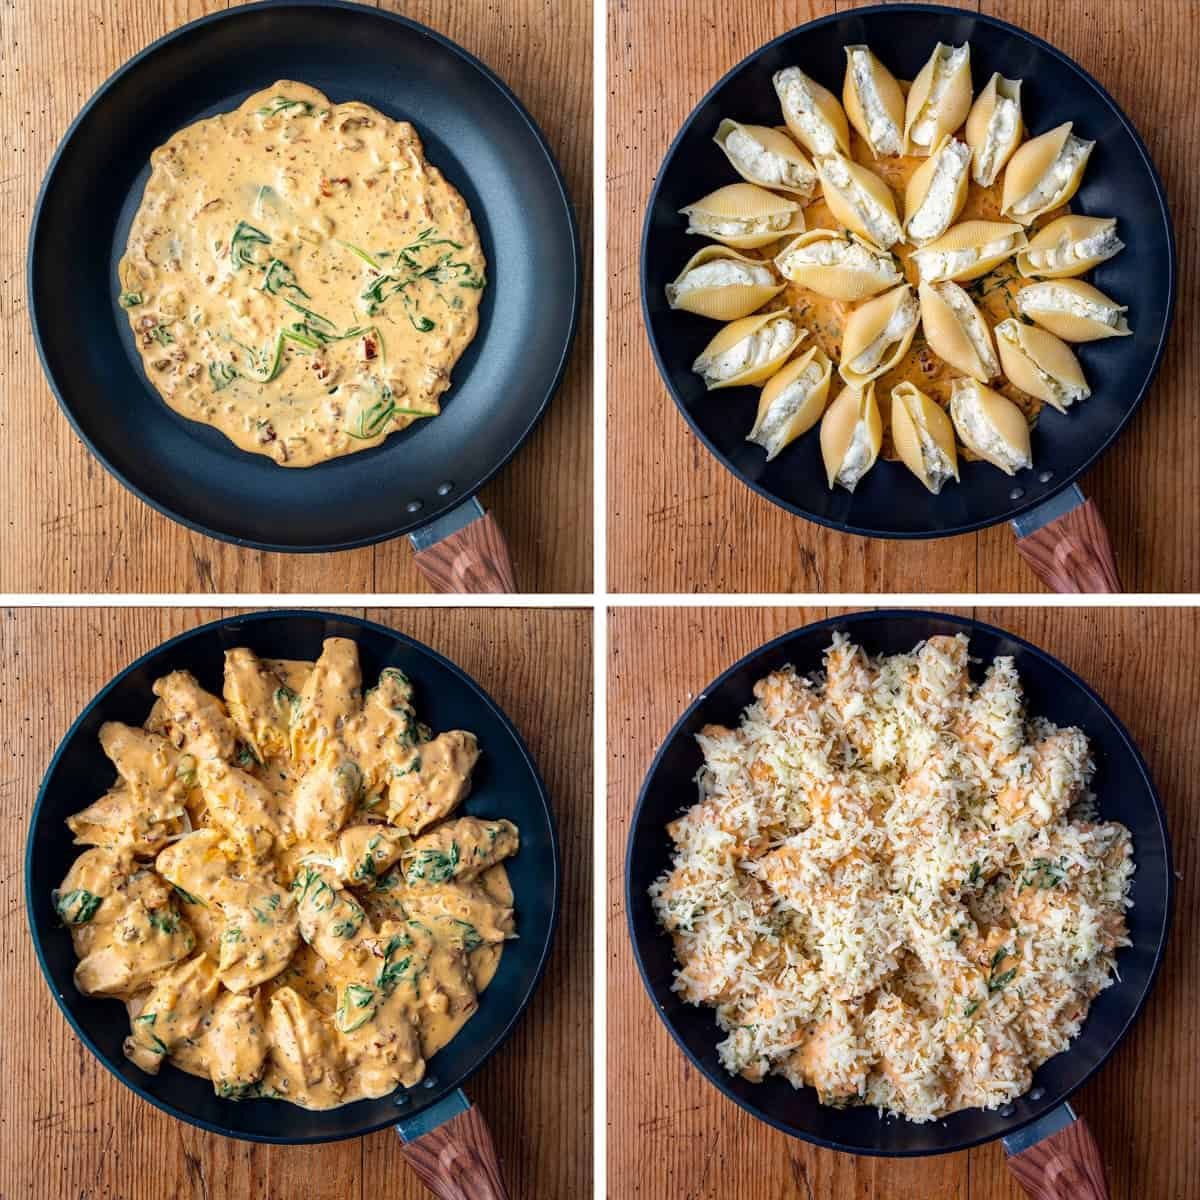 Process for Making Tuscan Stuffed Shells in Skillet